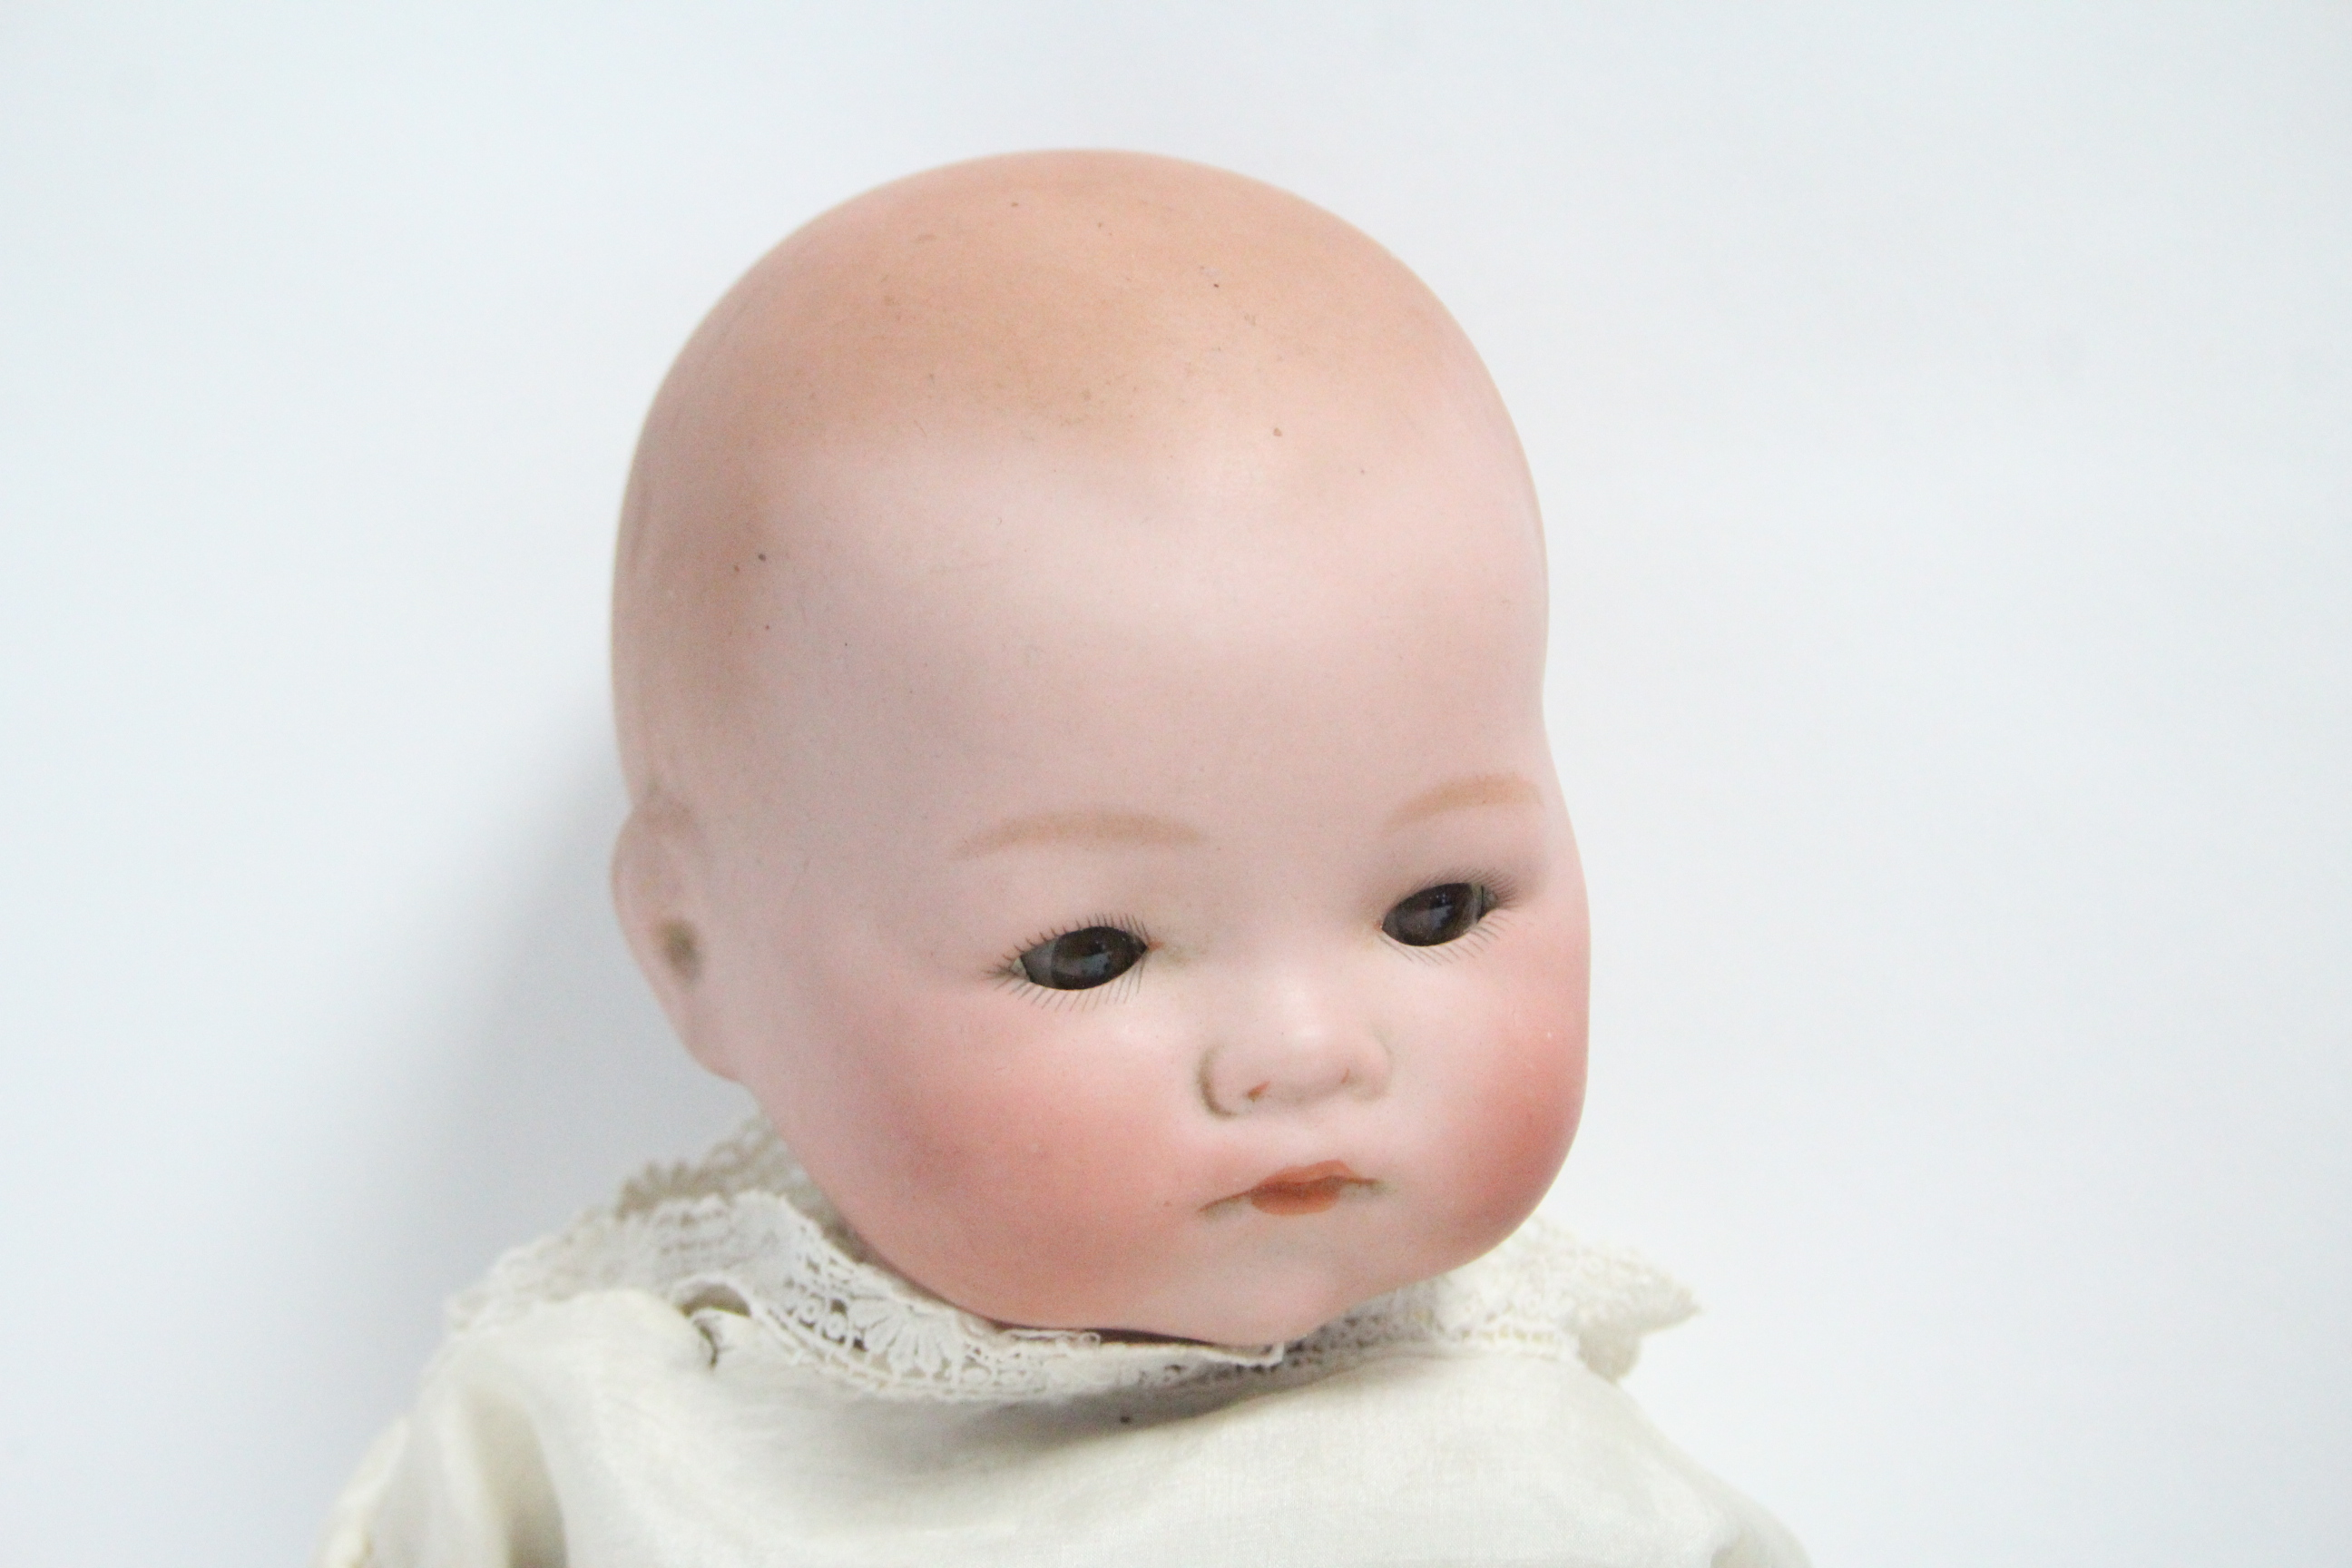 Lot 328 - An Armand Marseille bisque head doll, No. 341./3, with brown sleeping eyes, moveable limbs & stuffed